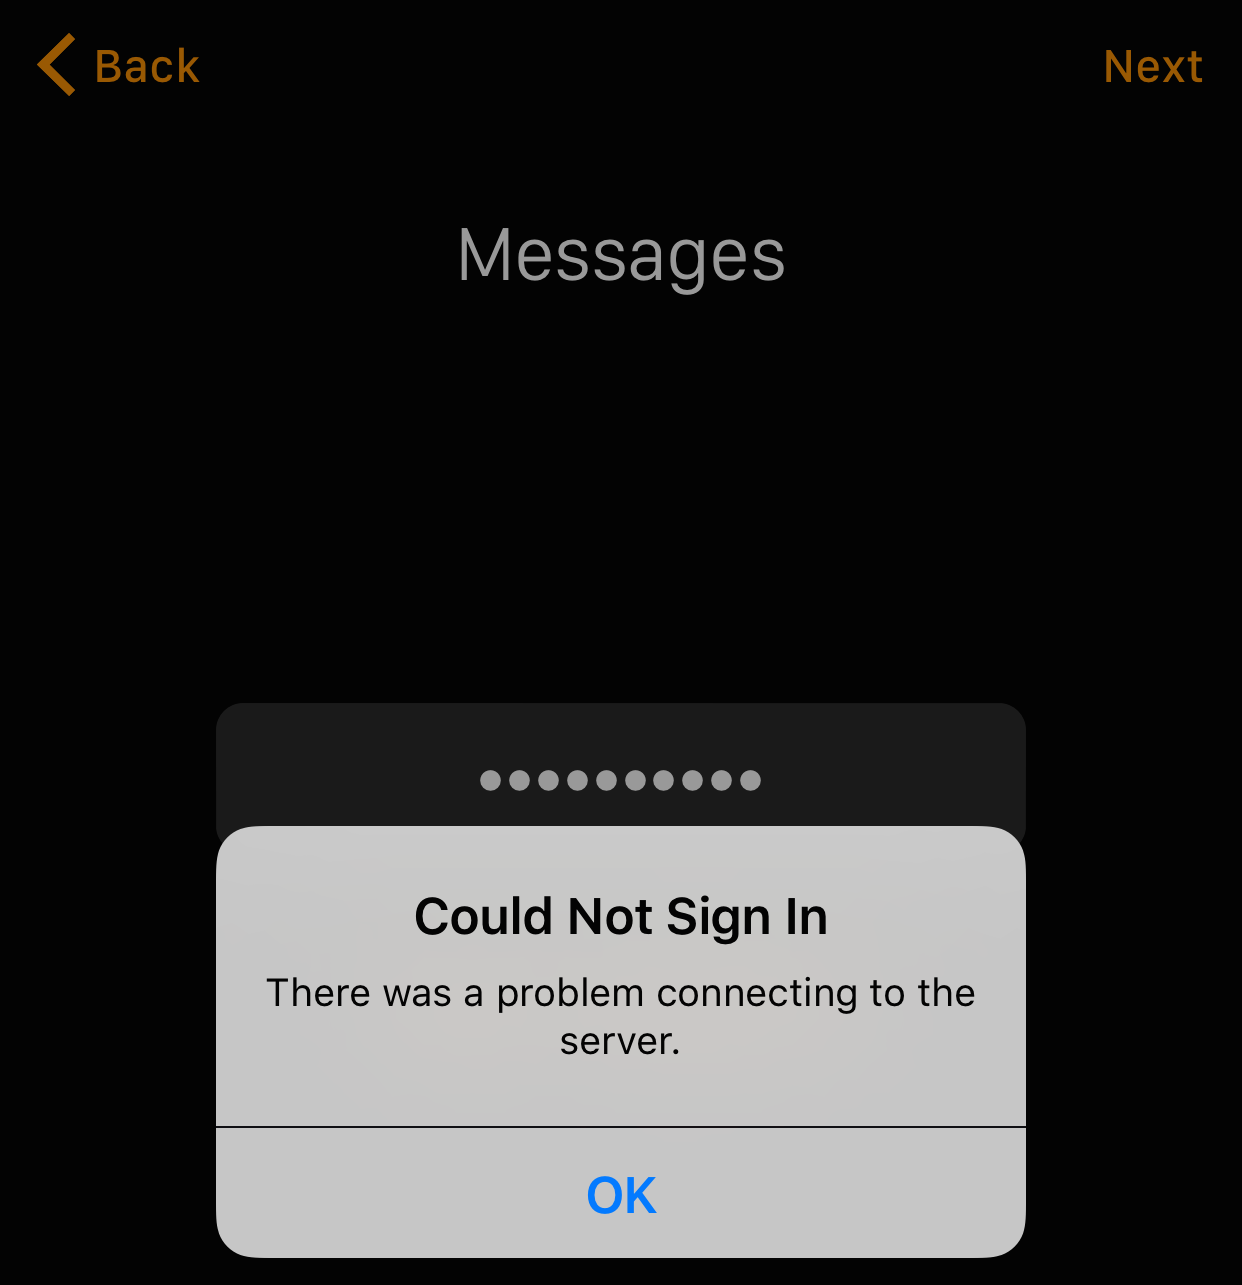 There was a problem connecting to the server Apple Watch